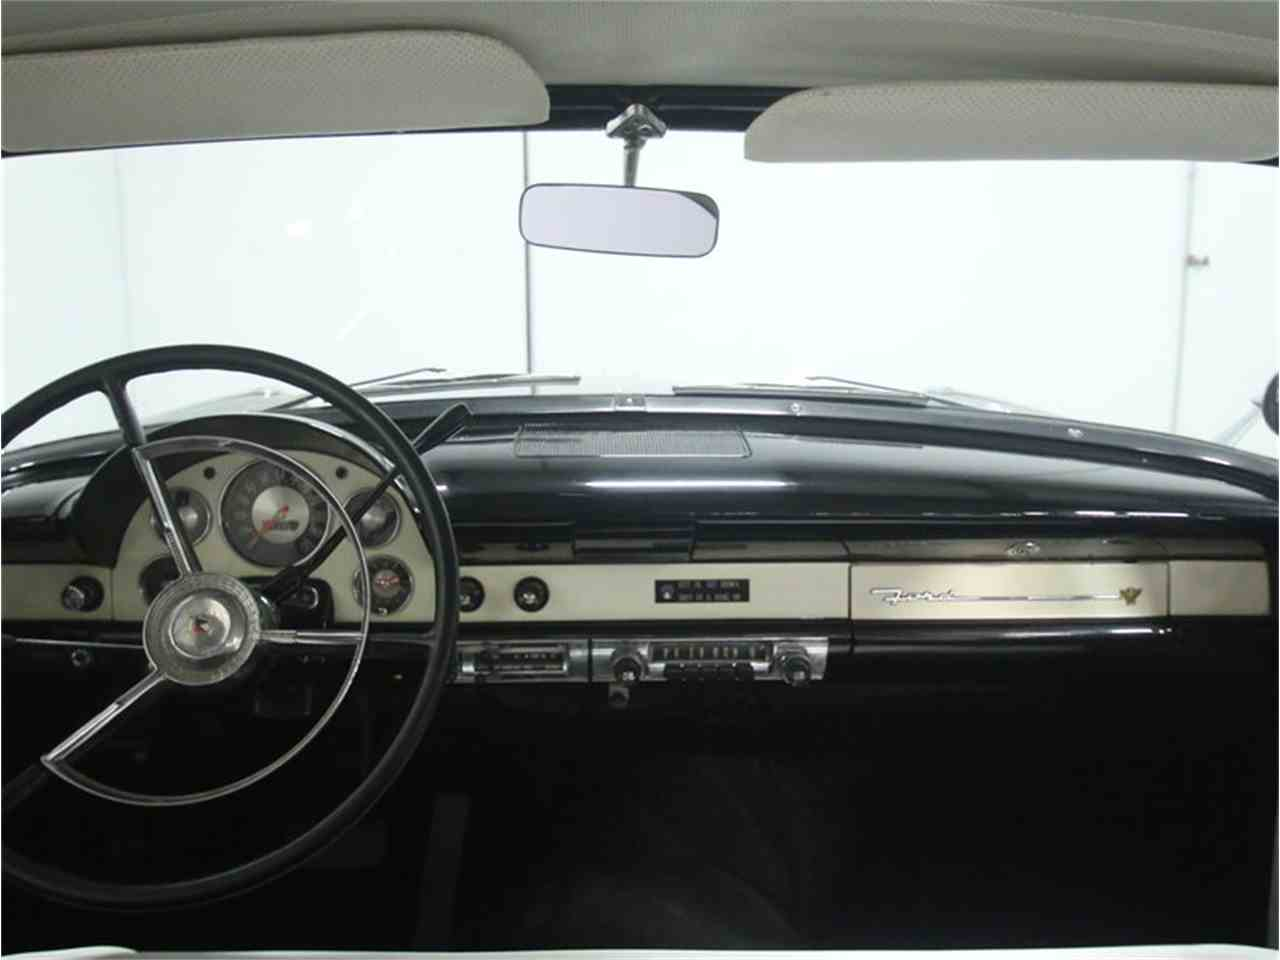 Large Picture of 1956 Ford Fairlane Victoria located in Lithia Springs Georgia Offered by Streetside Classics - Atlanta - LAUC